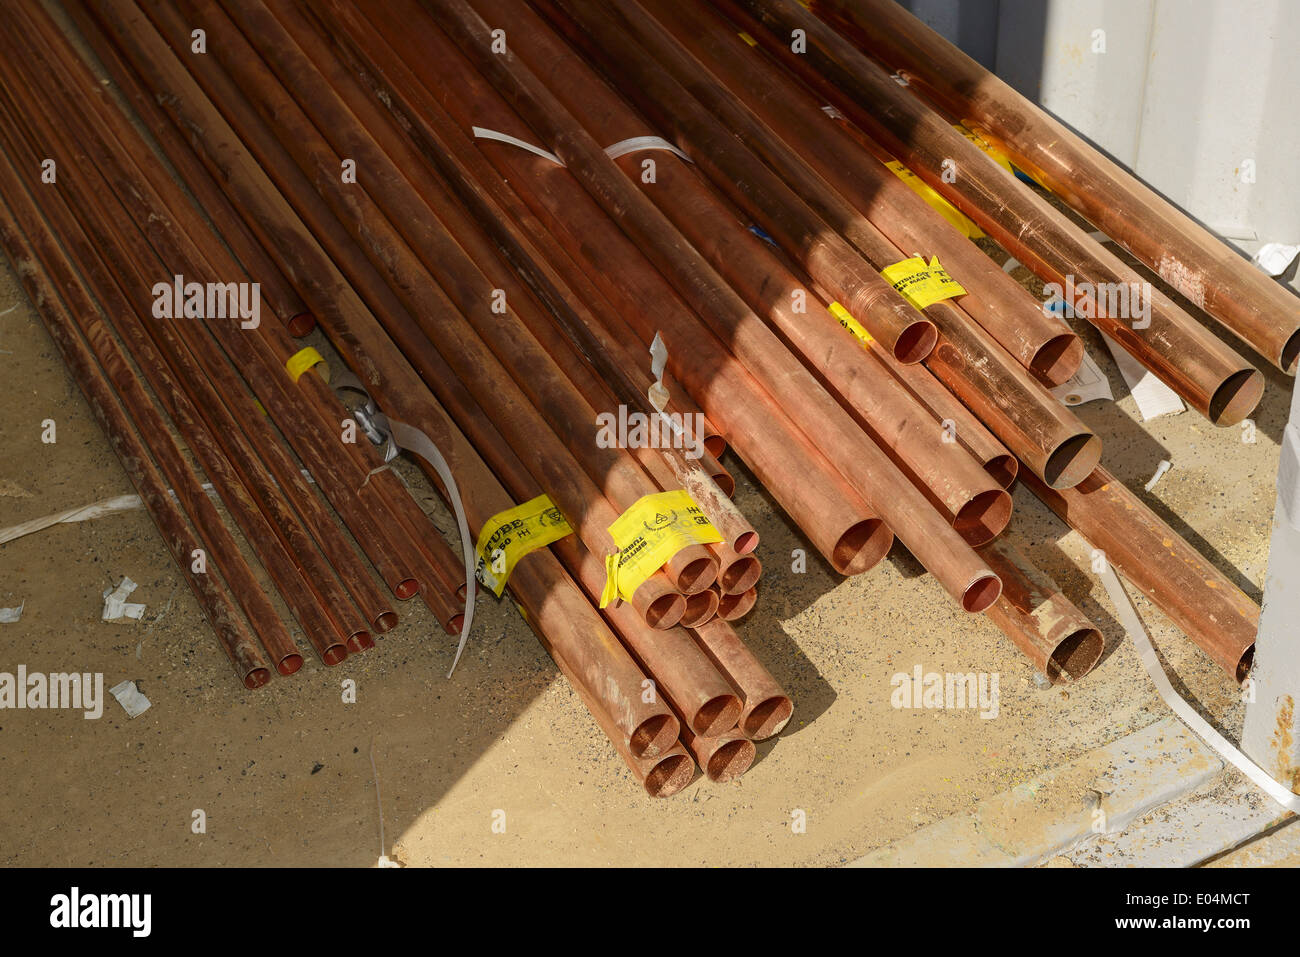 Lengths of copper pipe - Stock Image